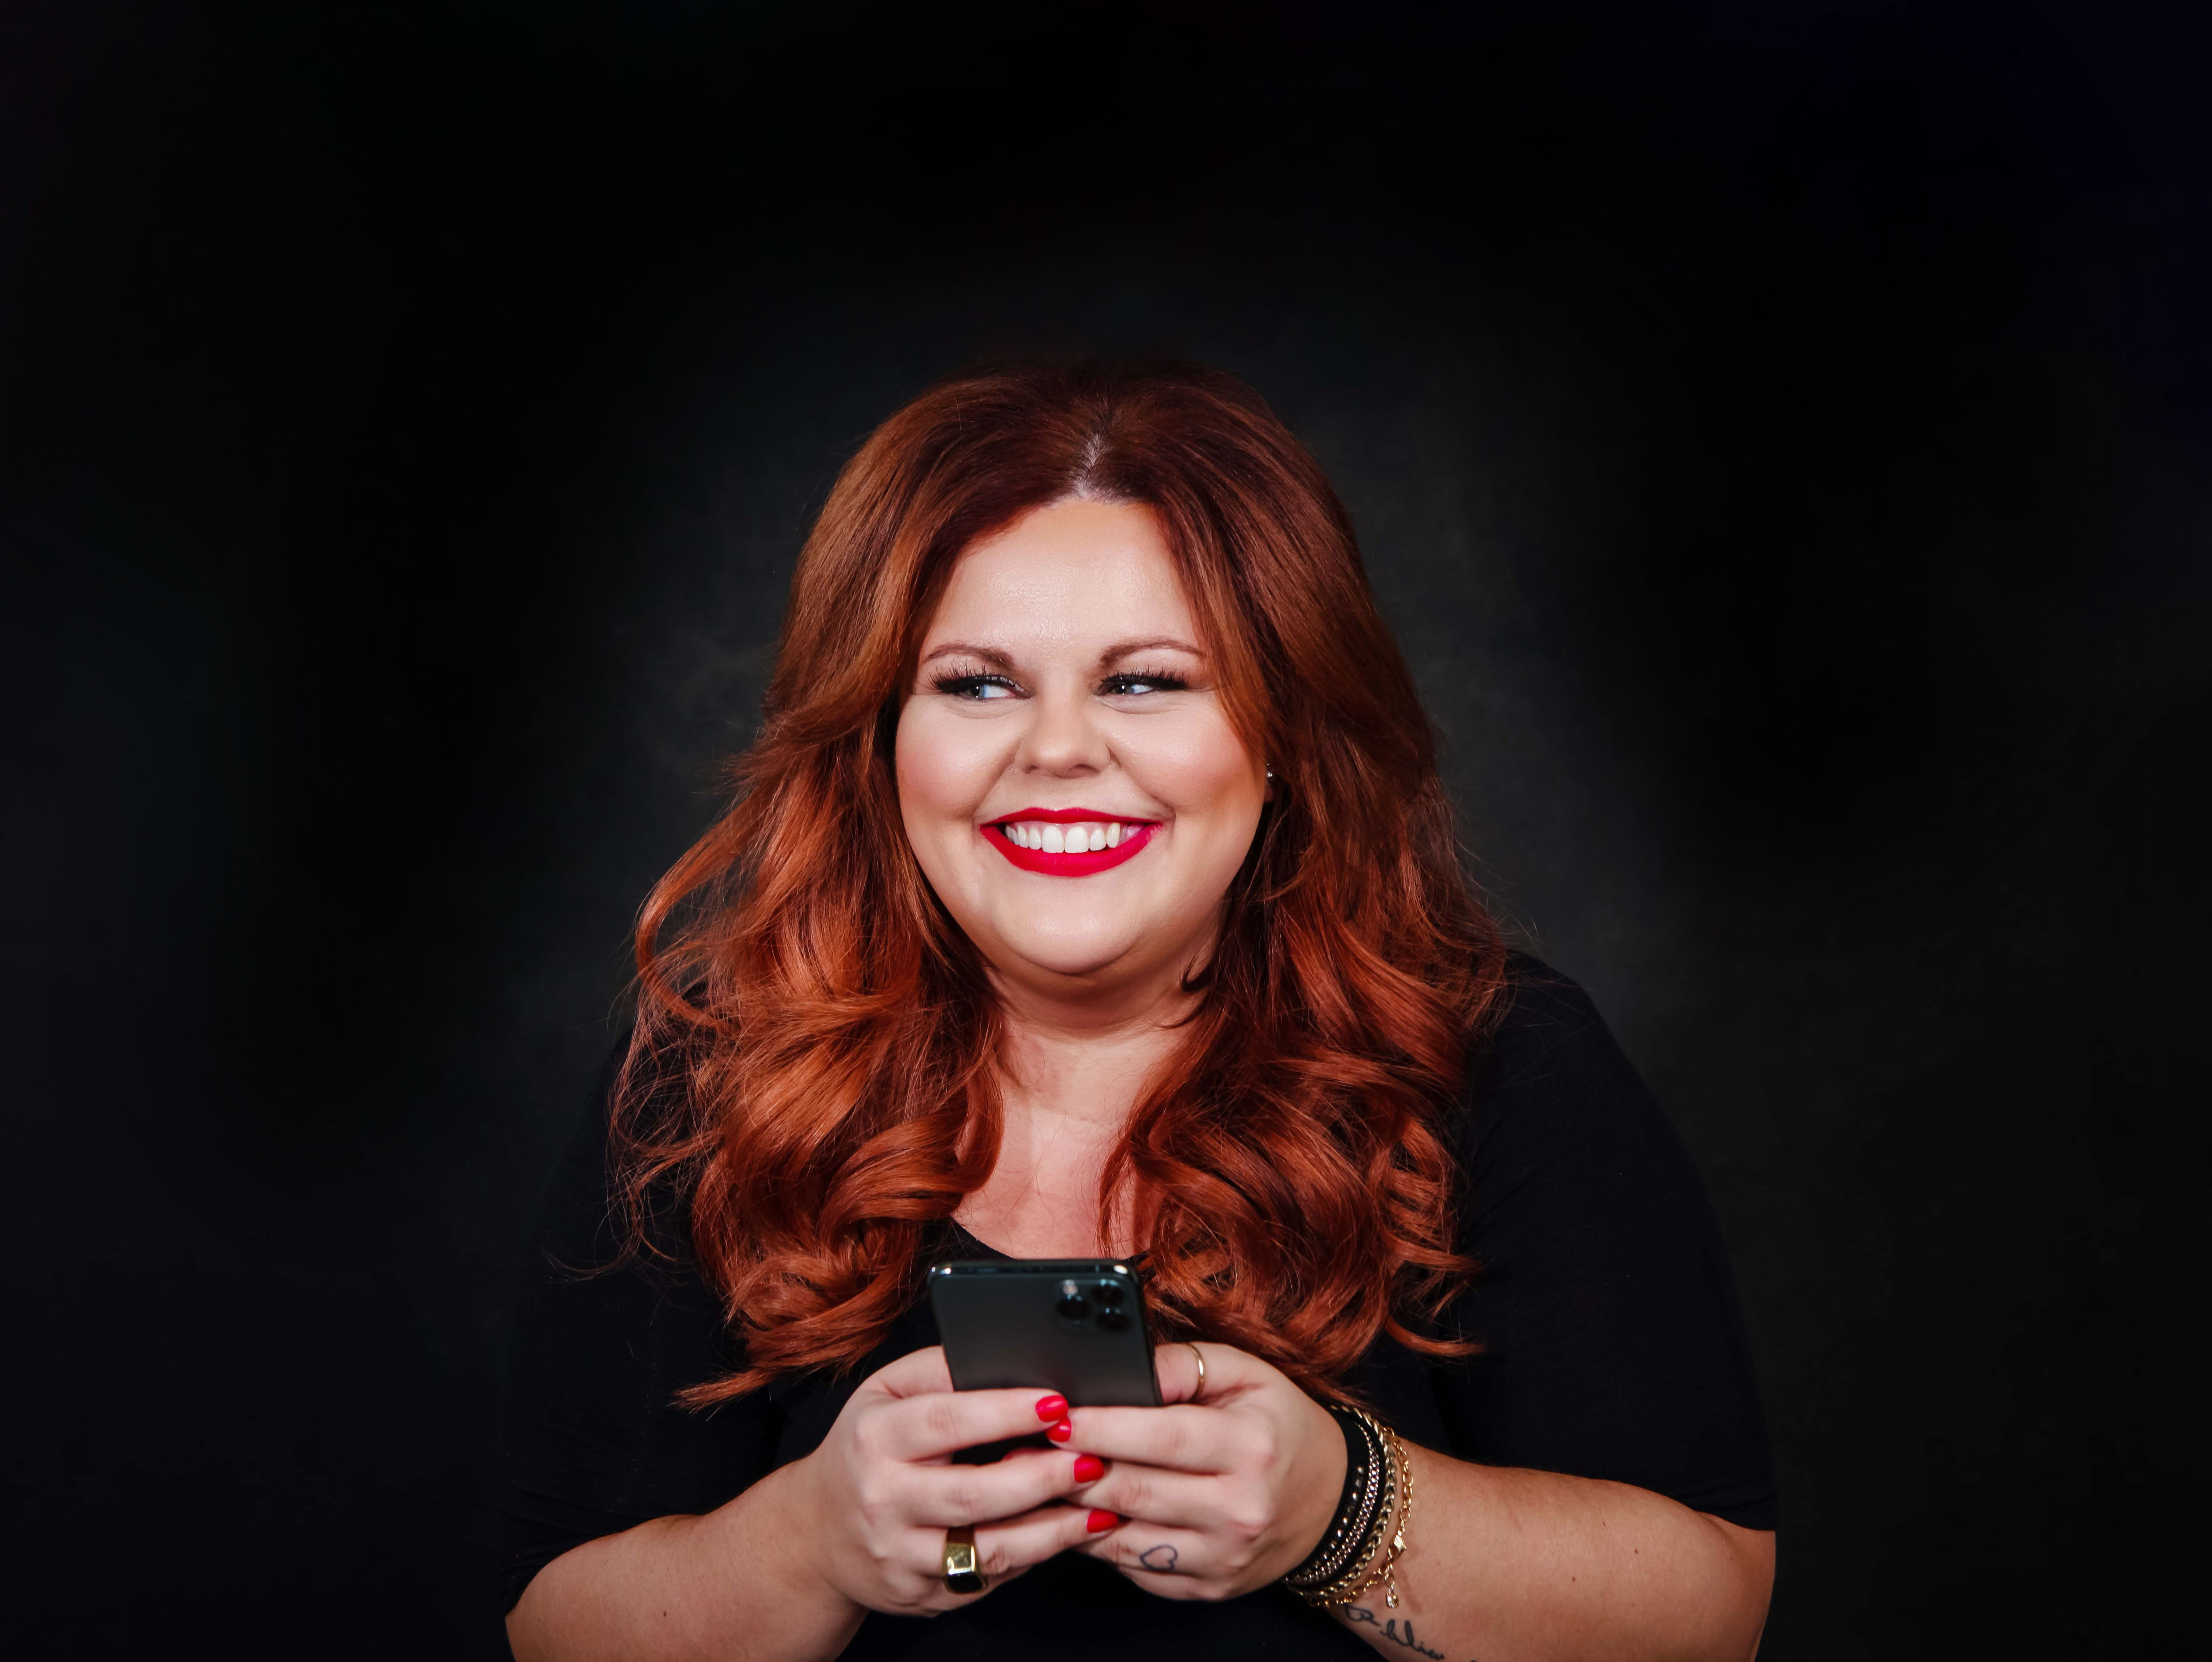 Karine Parthenais smiling and holding an iPhone